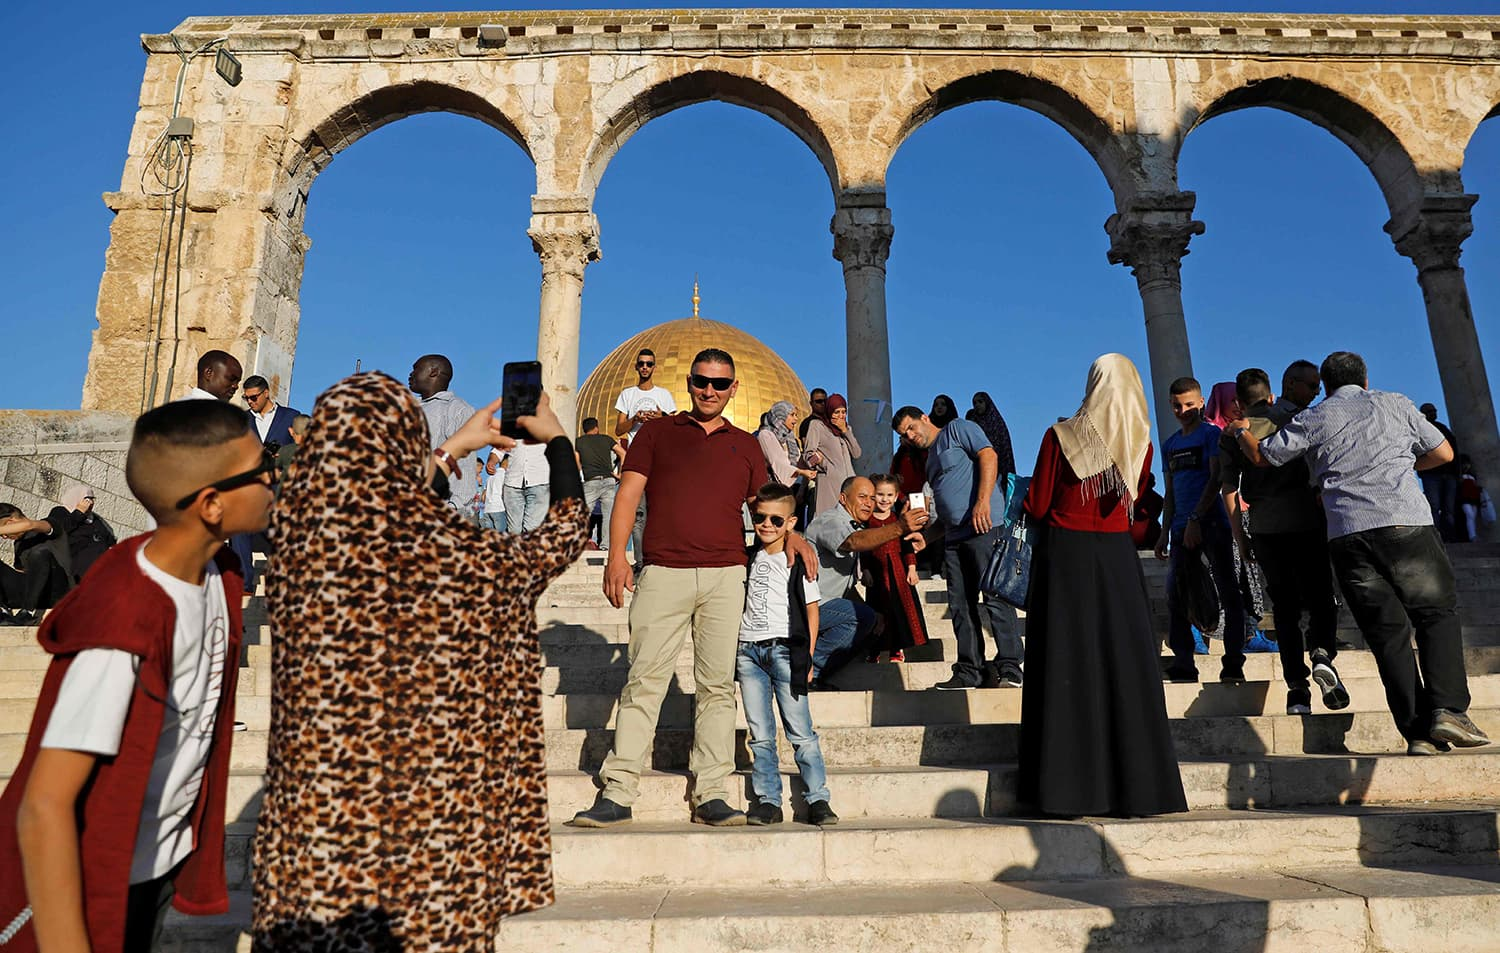 Palestinian Muslims take pictures as they gather for the morning Eid prayer near the Dome of Rock at the Al-Aqsa Mosque compound. — AFP